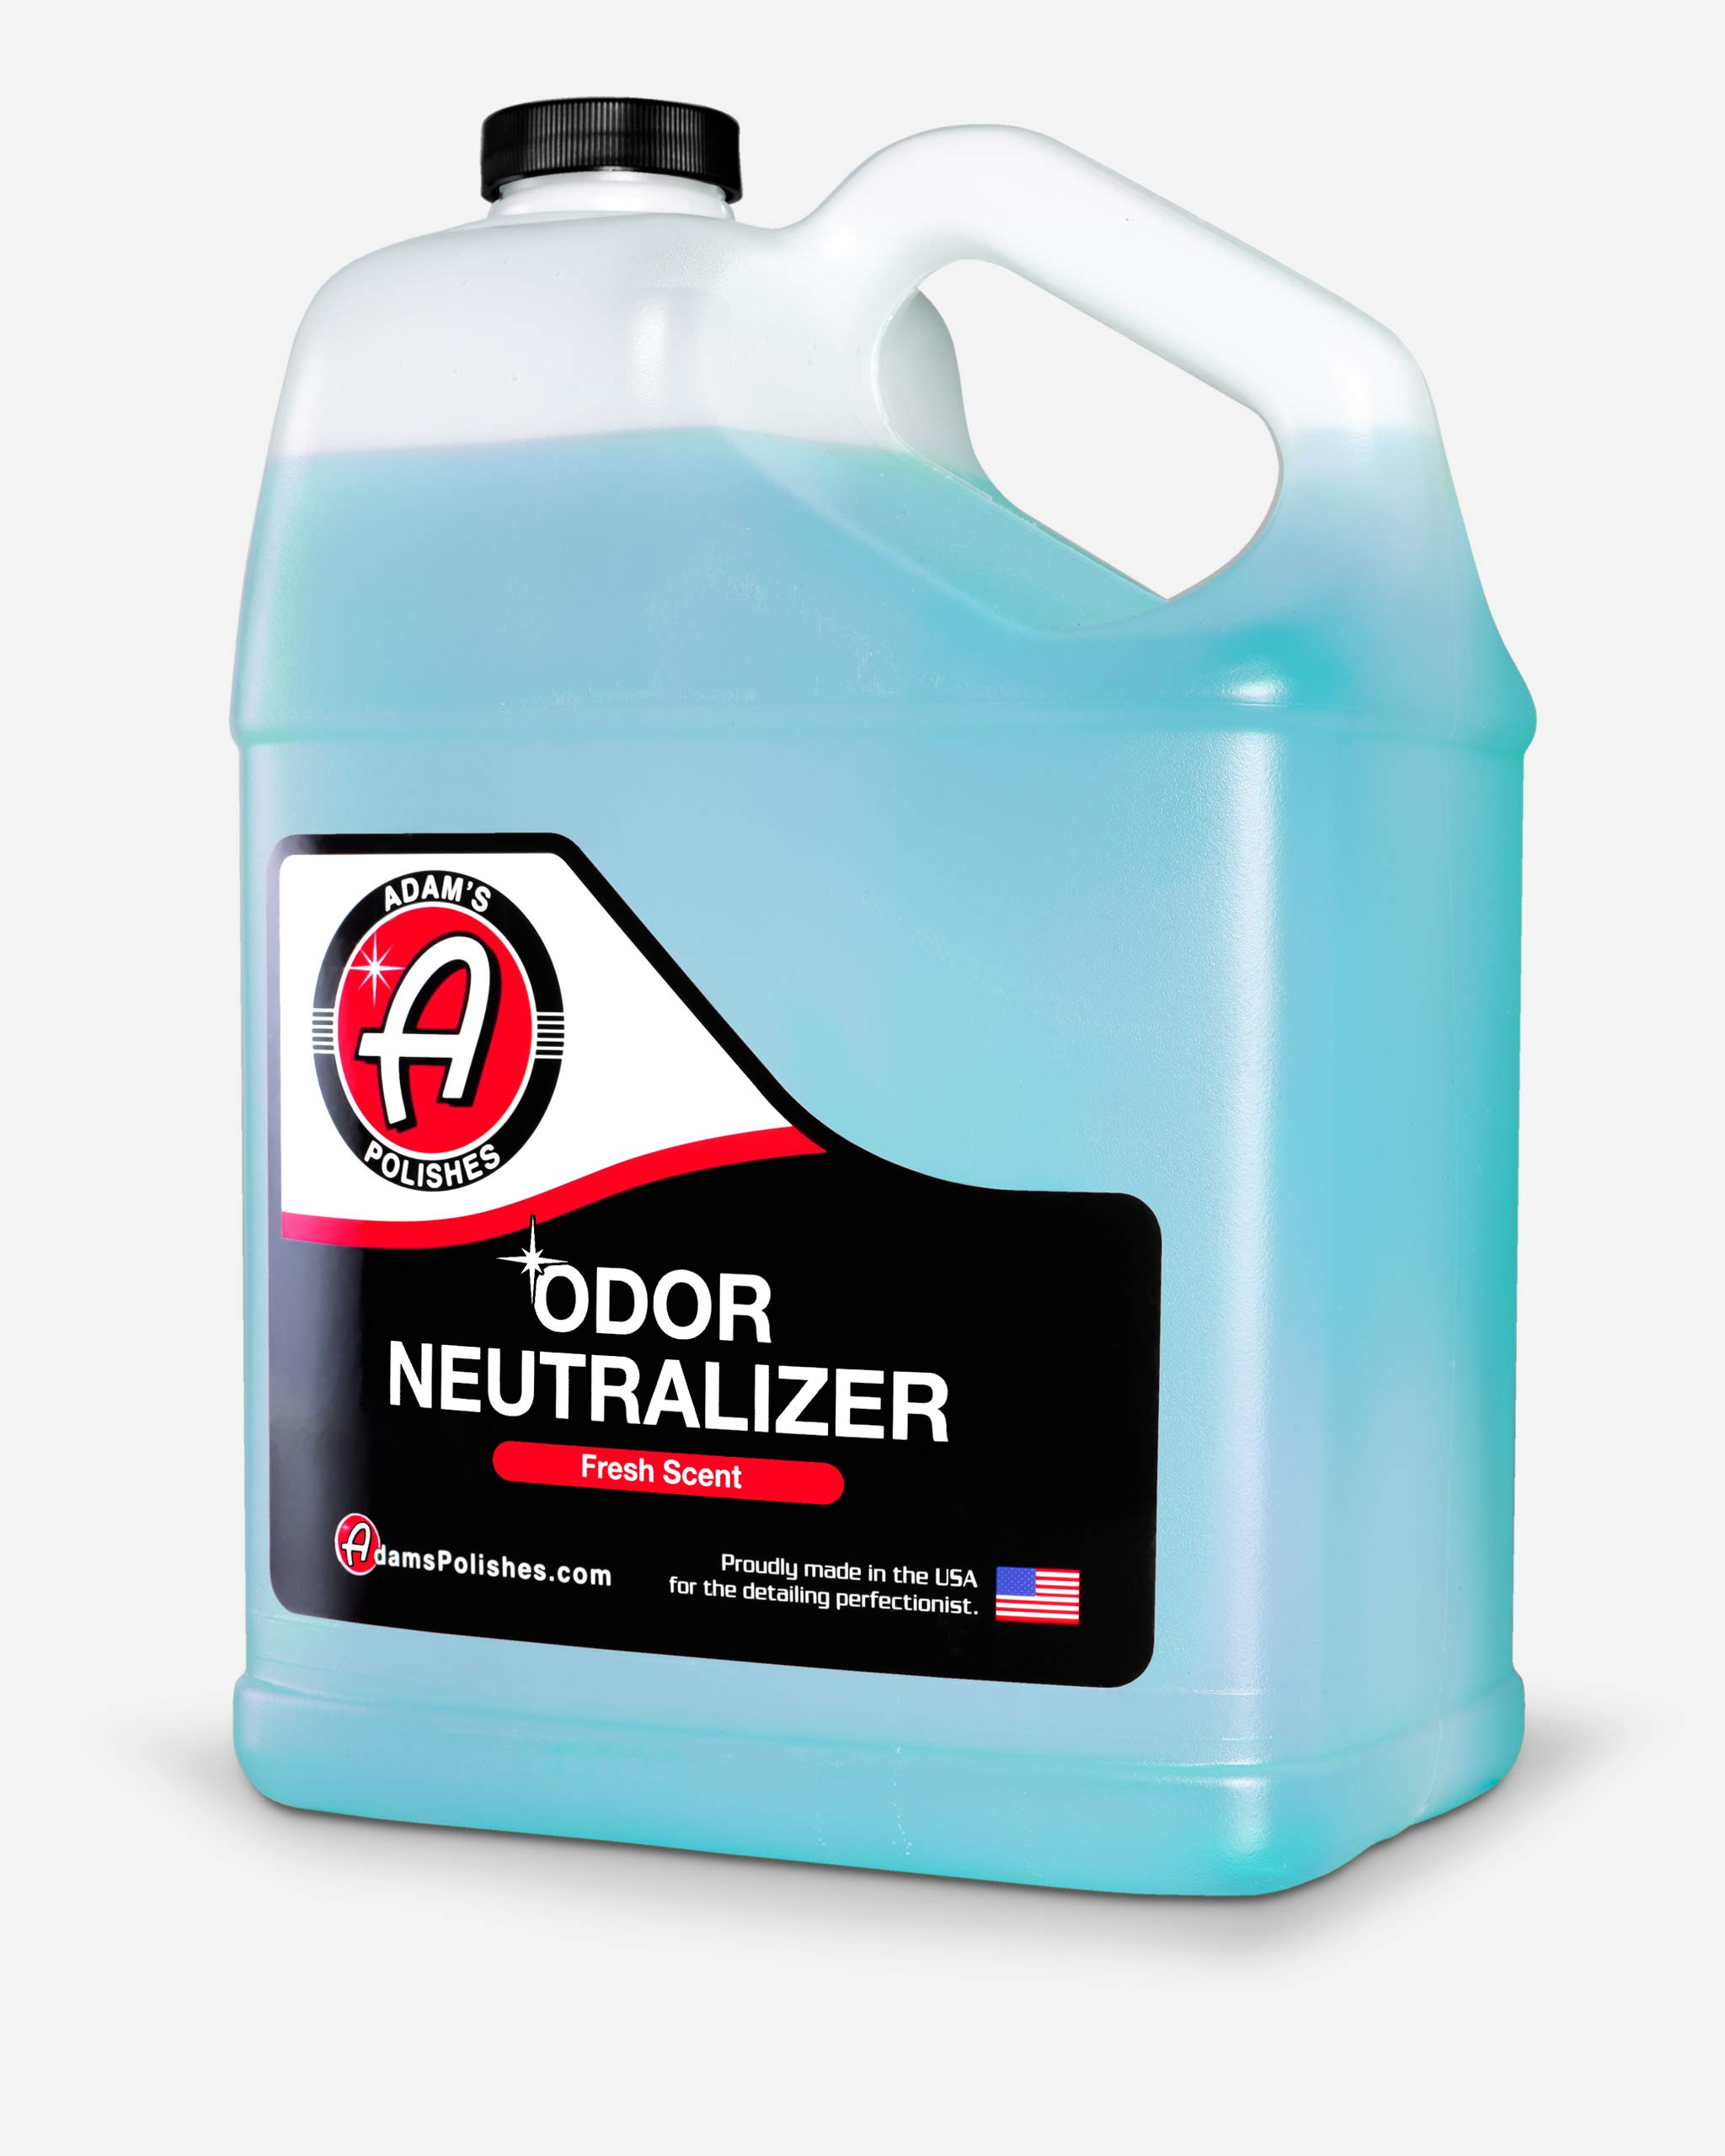 Adam's Odor Neutralizer - Specially Formulated Air Freshener That Eliminates Harmful Odors from Car Interior Accessories, Leather Seats, Carpet Upholstery, Pet Odors (Fresh Scent Gallon) by Adam's Polishes